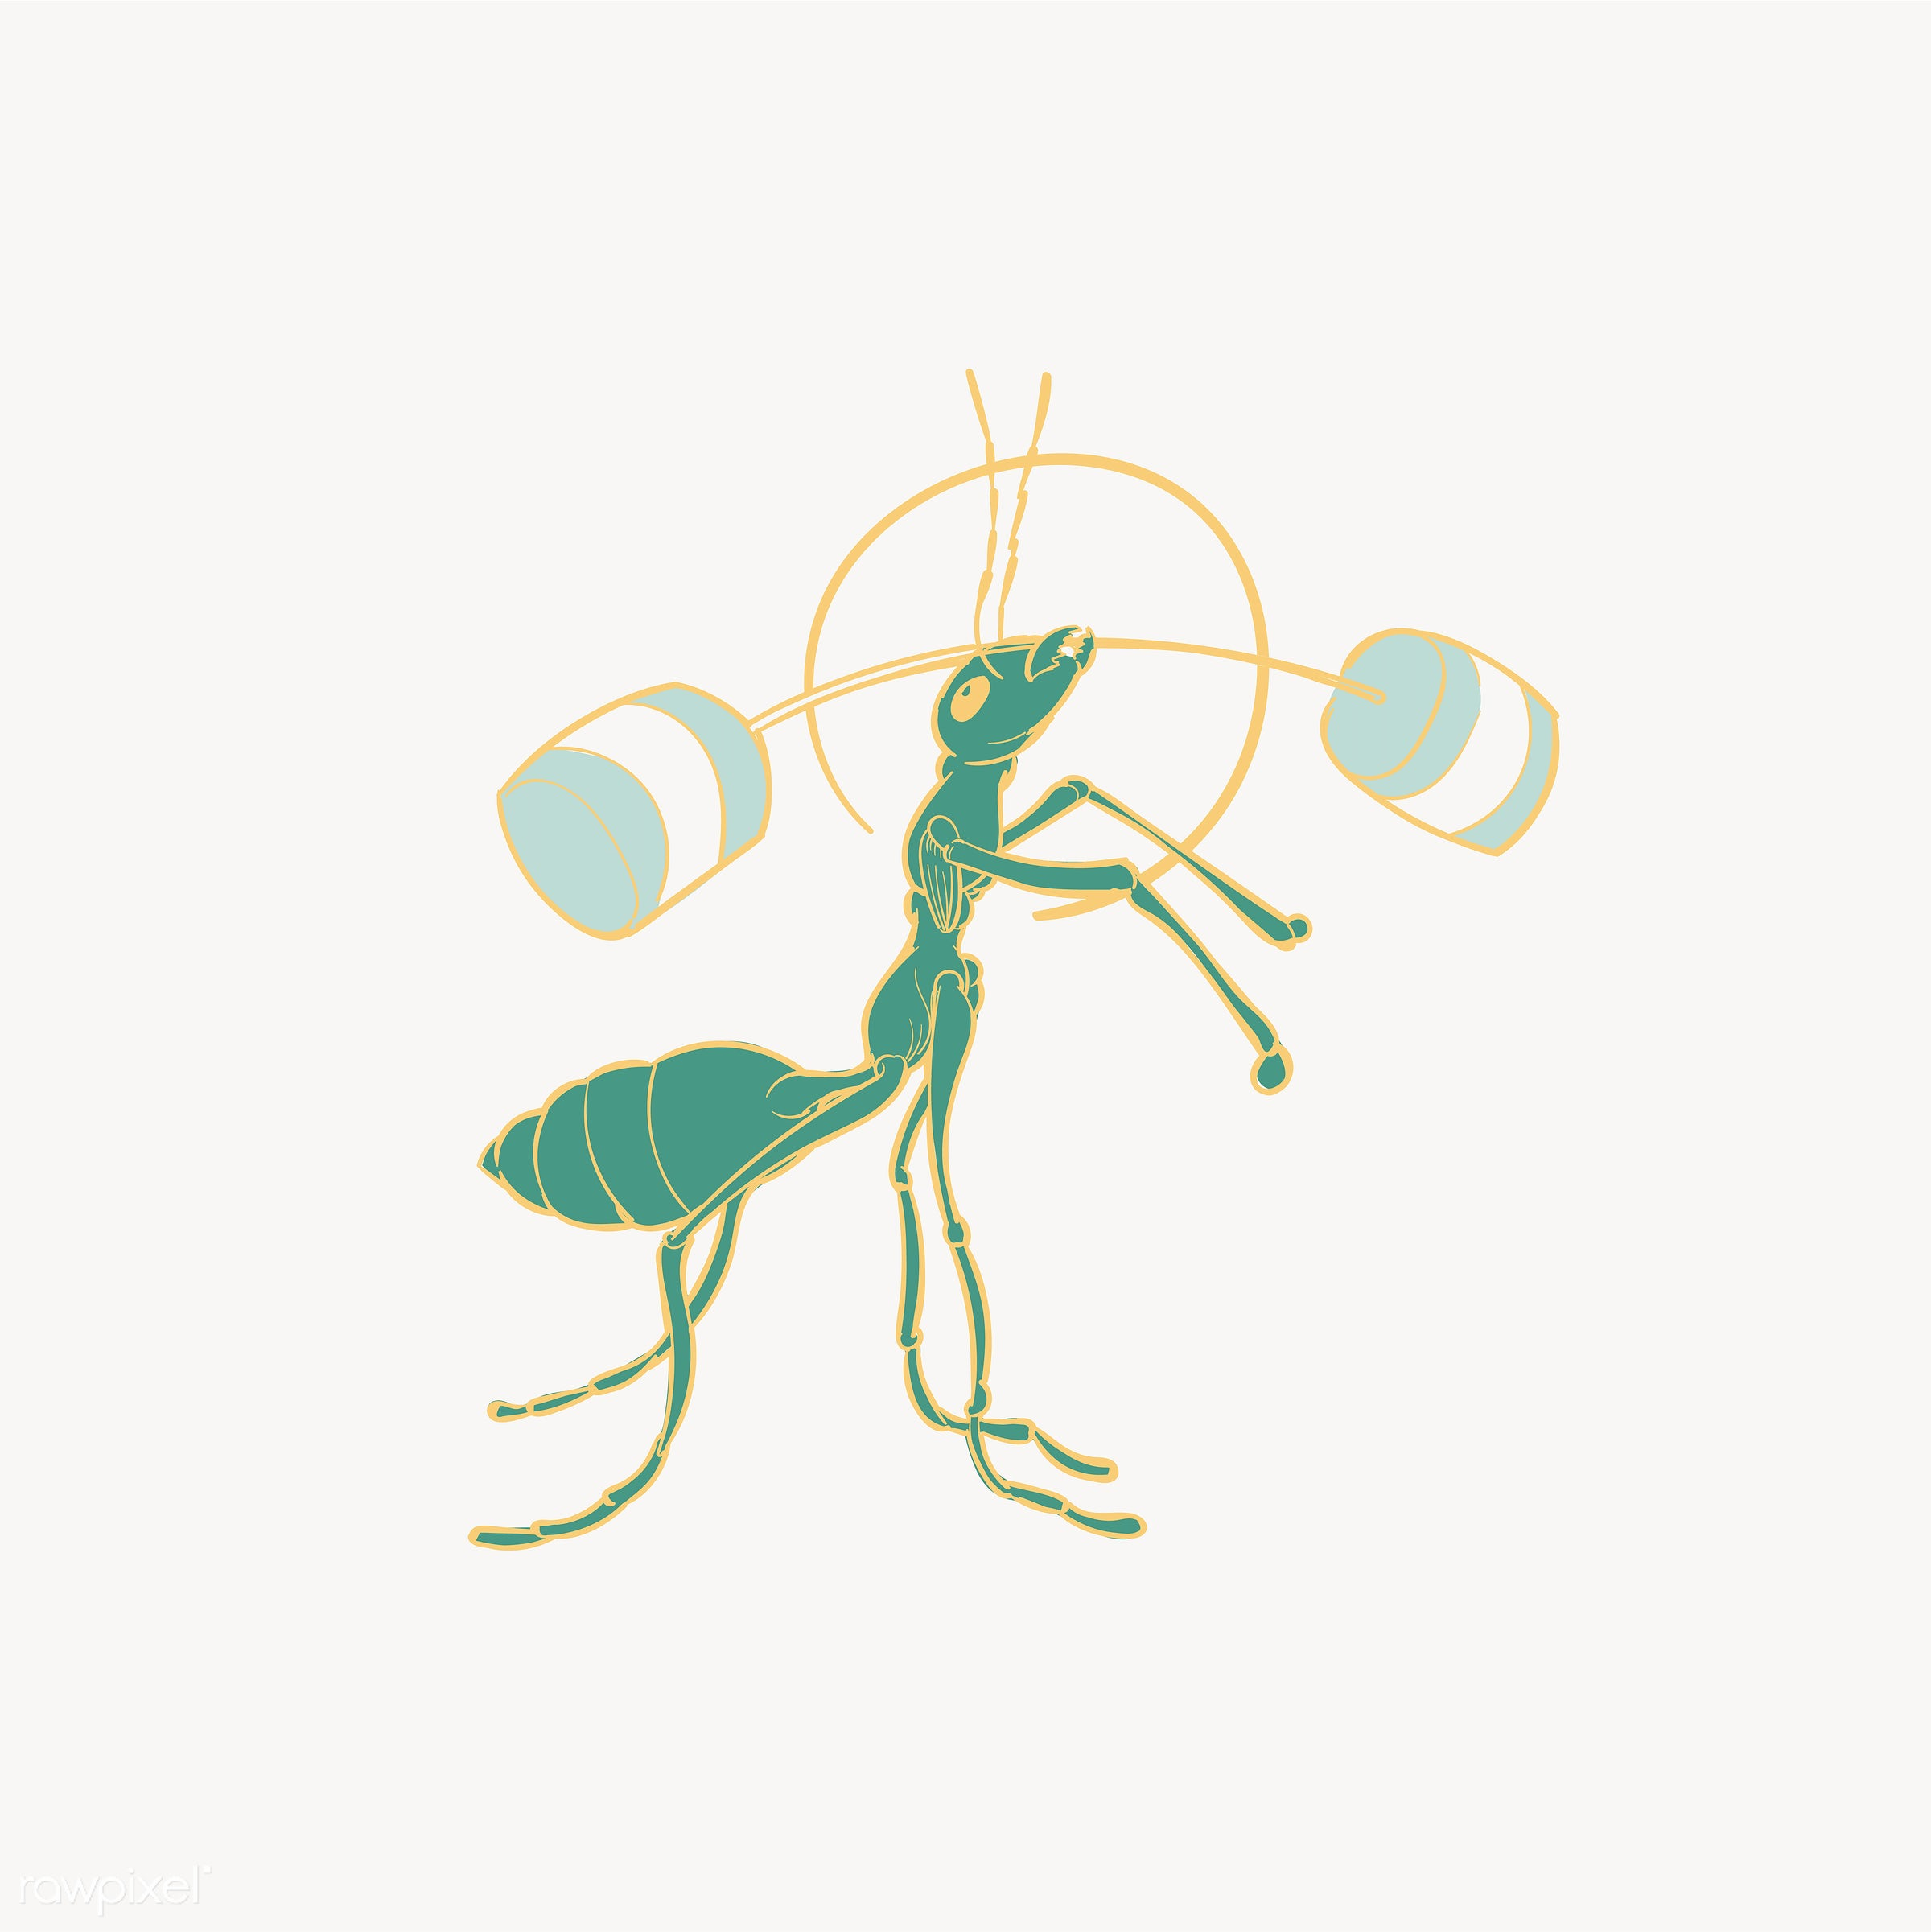 Hand drawing illustration of power strength concept - active, animal, ant, artwork, creative, creativity, design, drawing,...